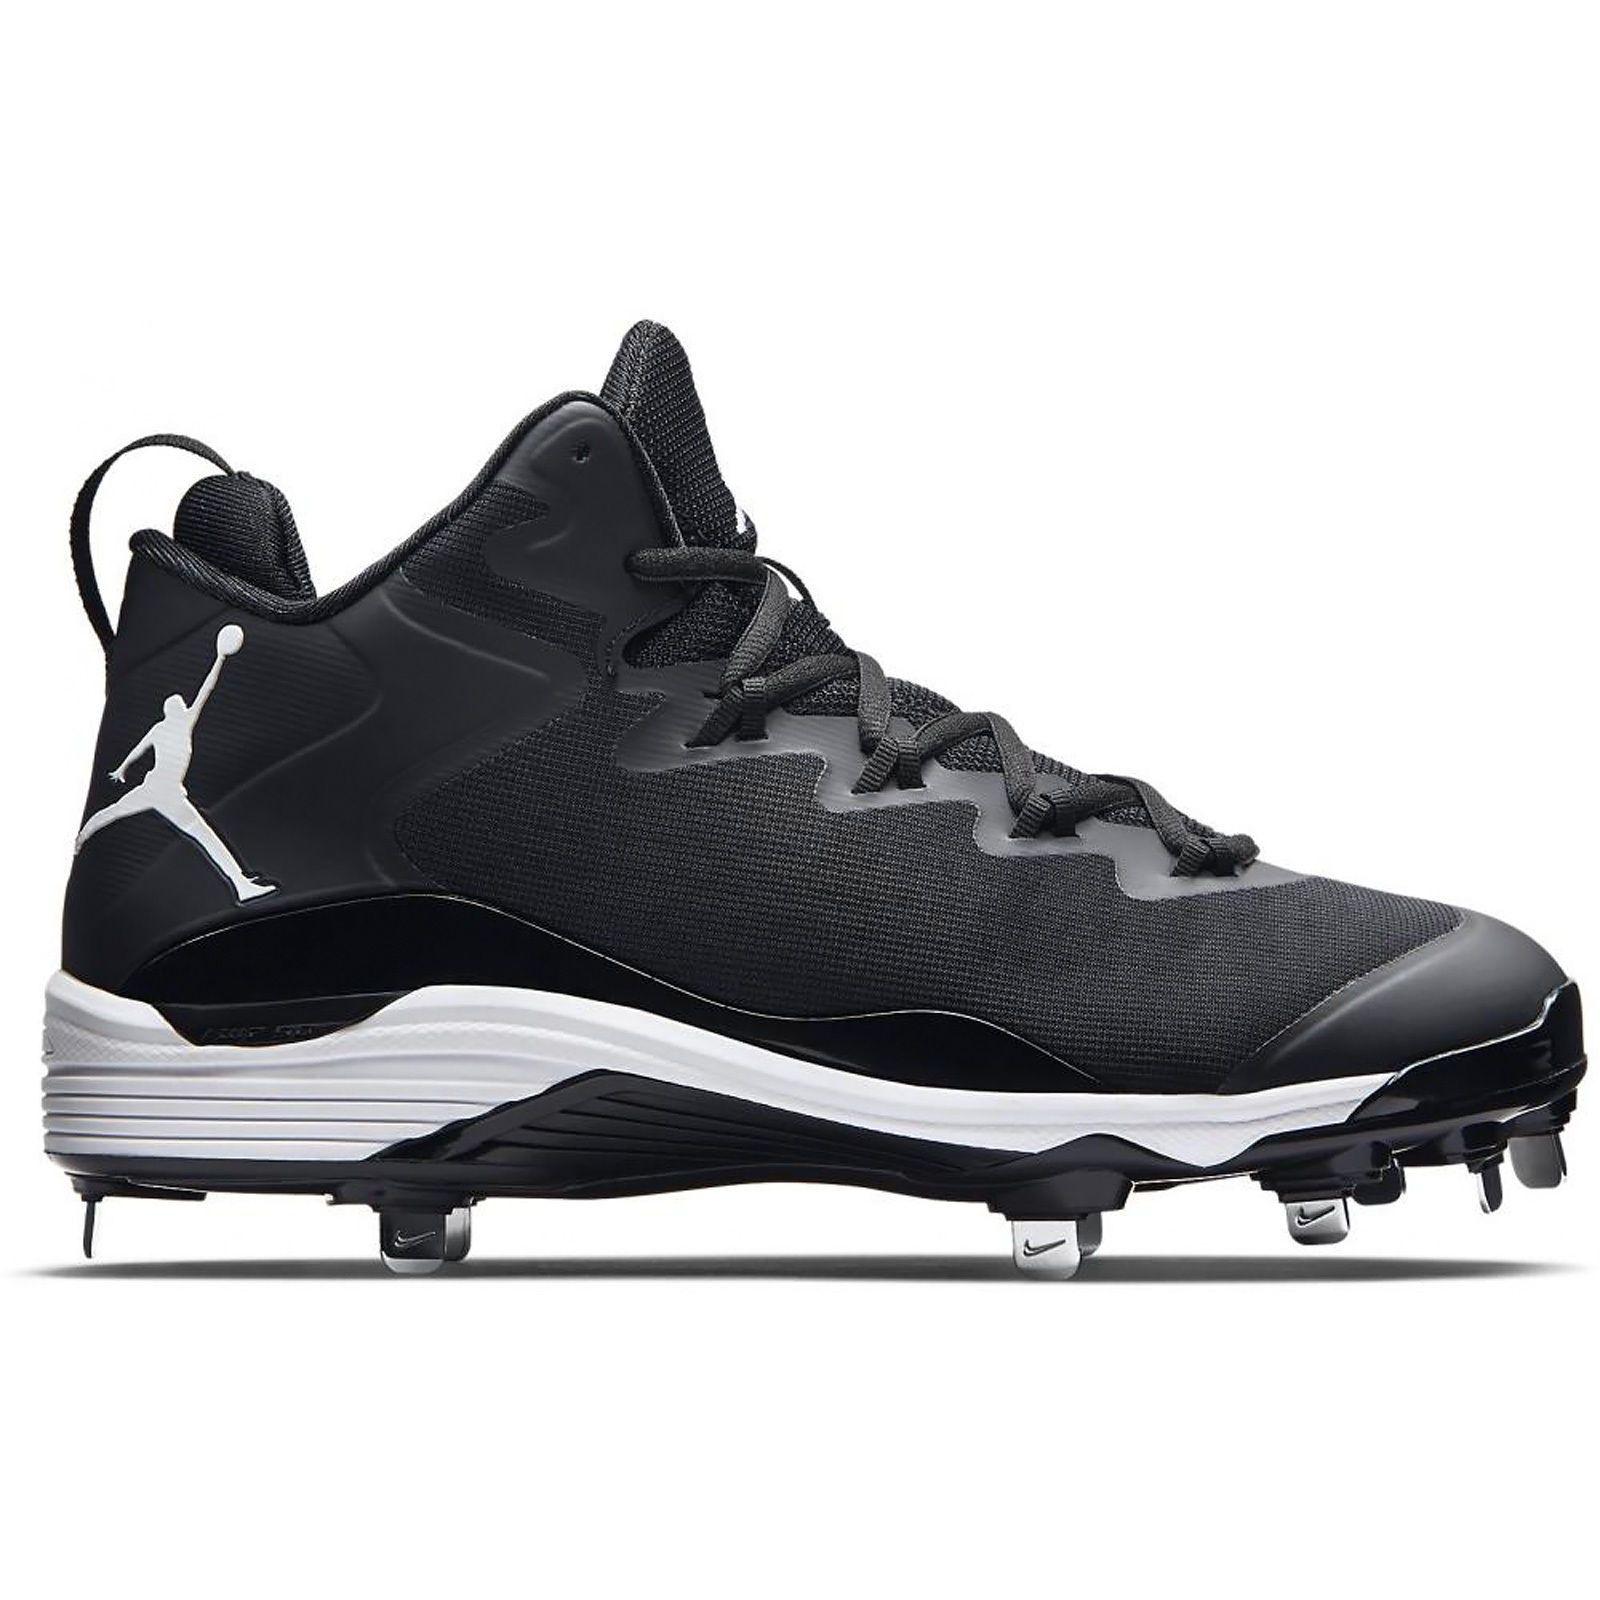 New Nike Air JORDAN Super.Fly 3 Metal Mens Baseball Cleats : Black : Size